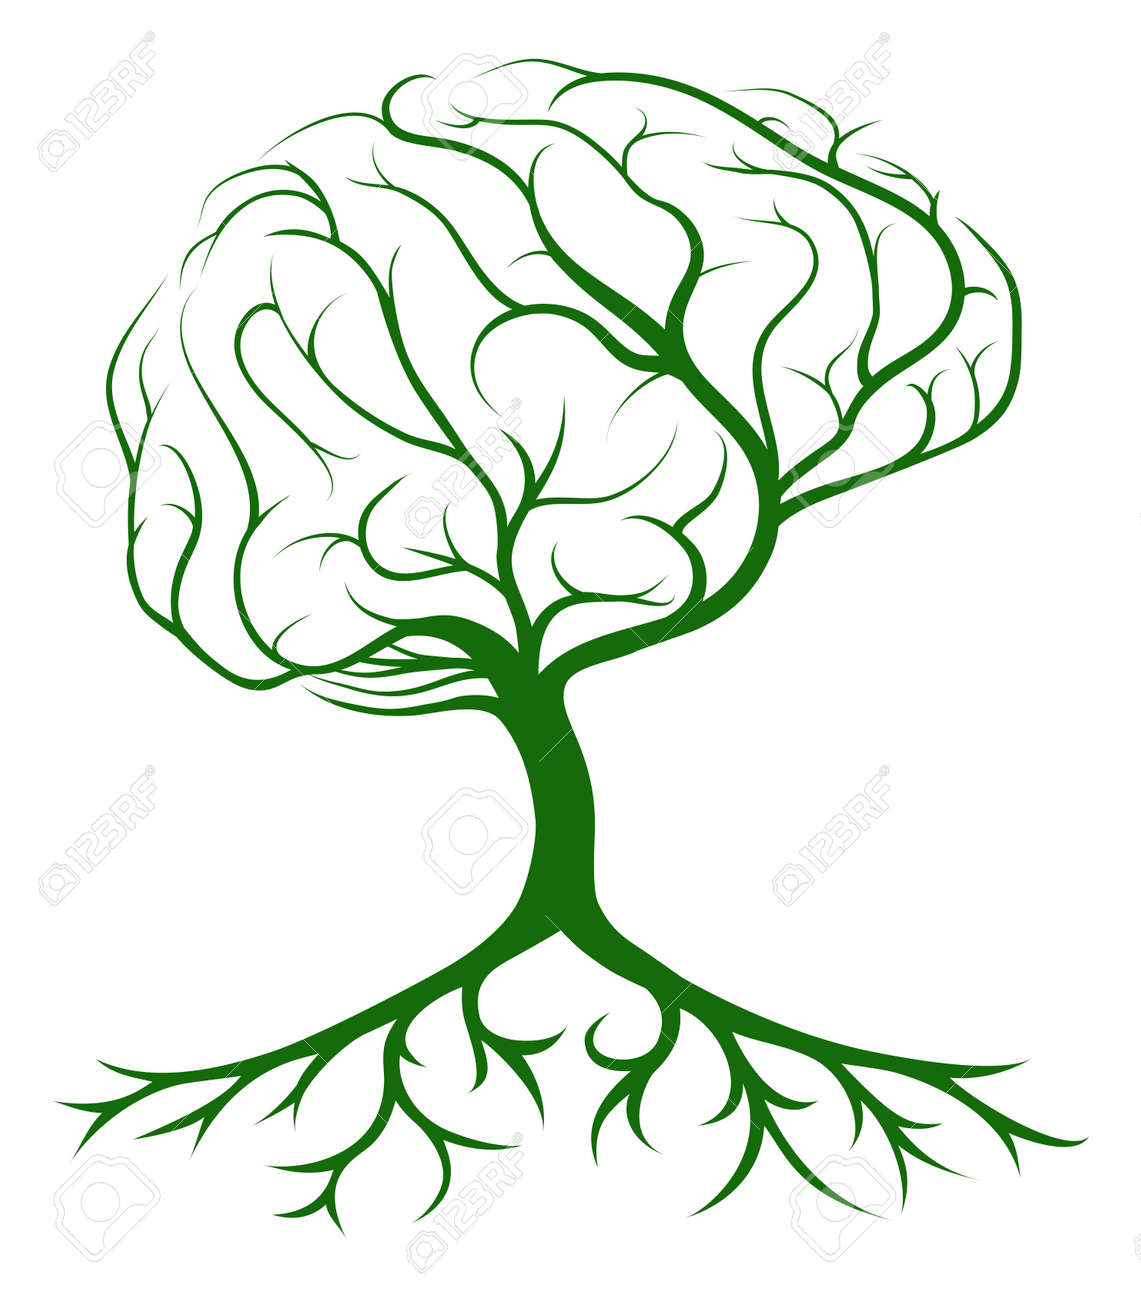 Brain Tree Concept Of A Tree Growing In The Shape Of A Human ...